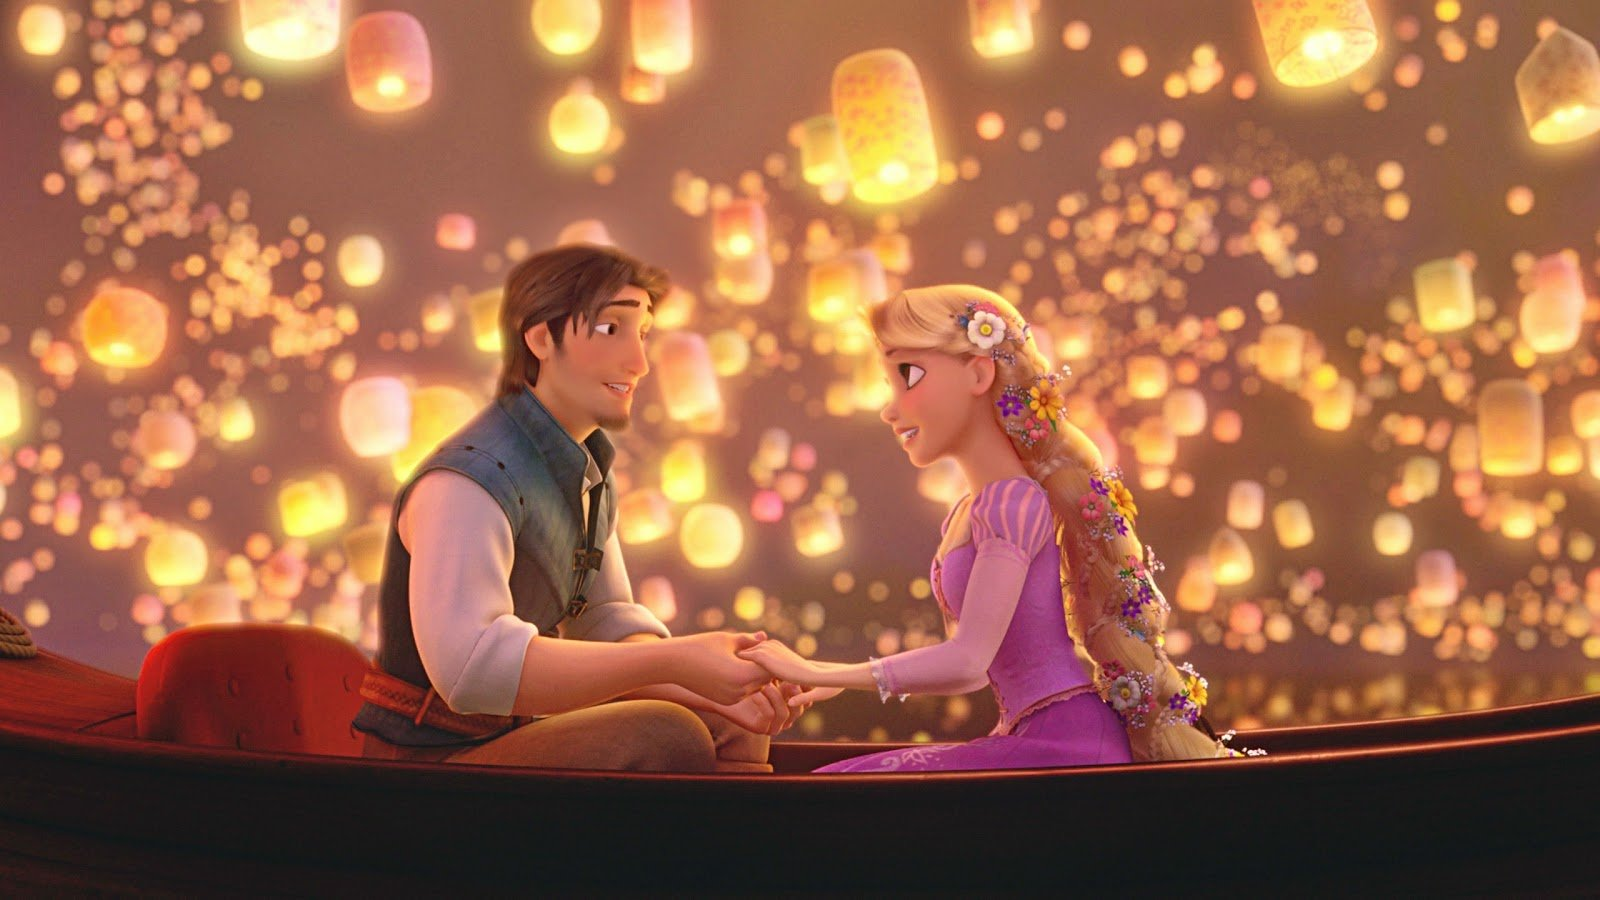 rapunzel and flynn tangled high definition wallpaper tangled rapunzel 1600x900